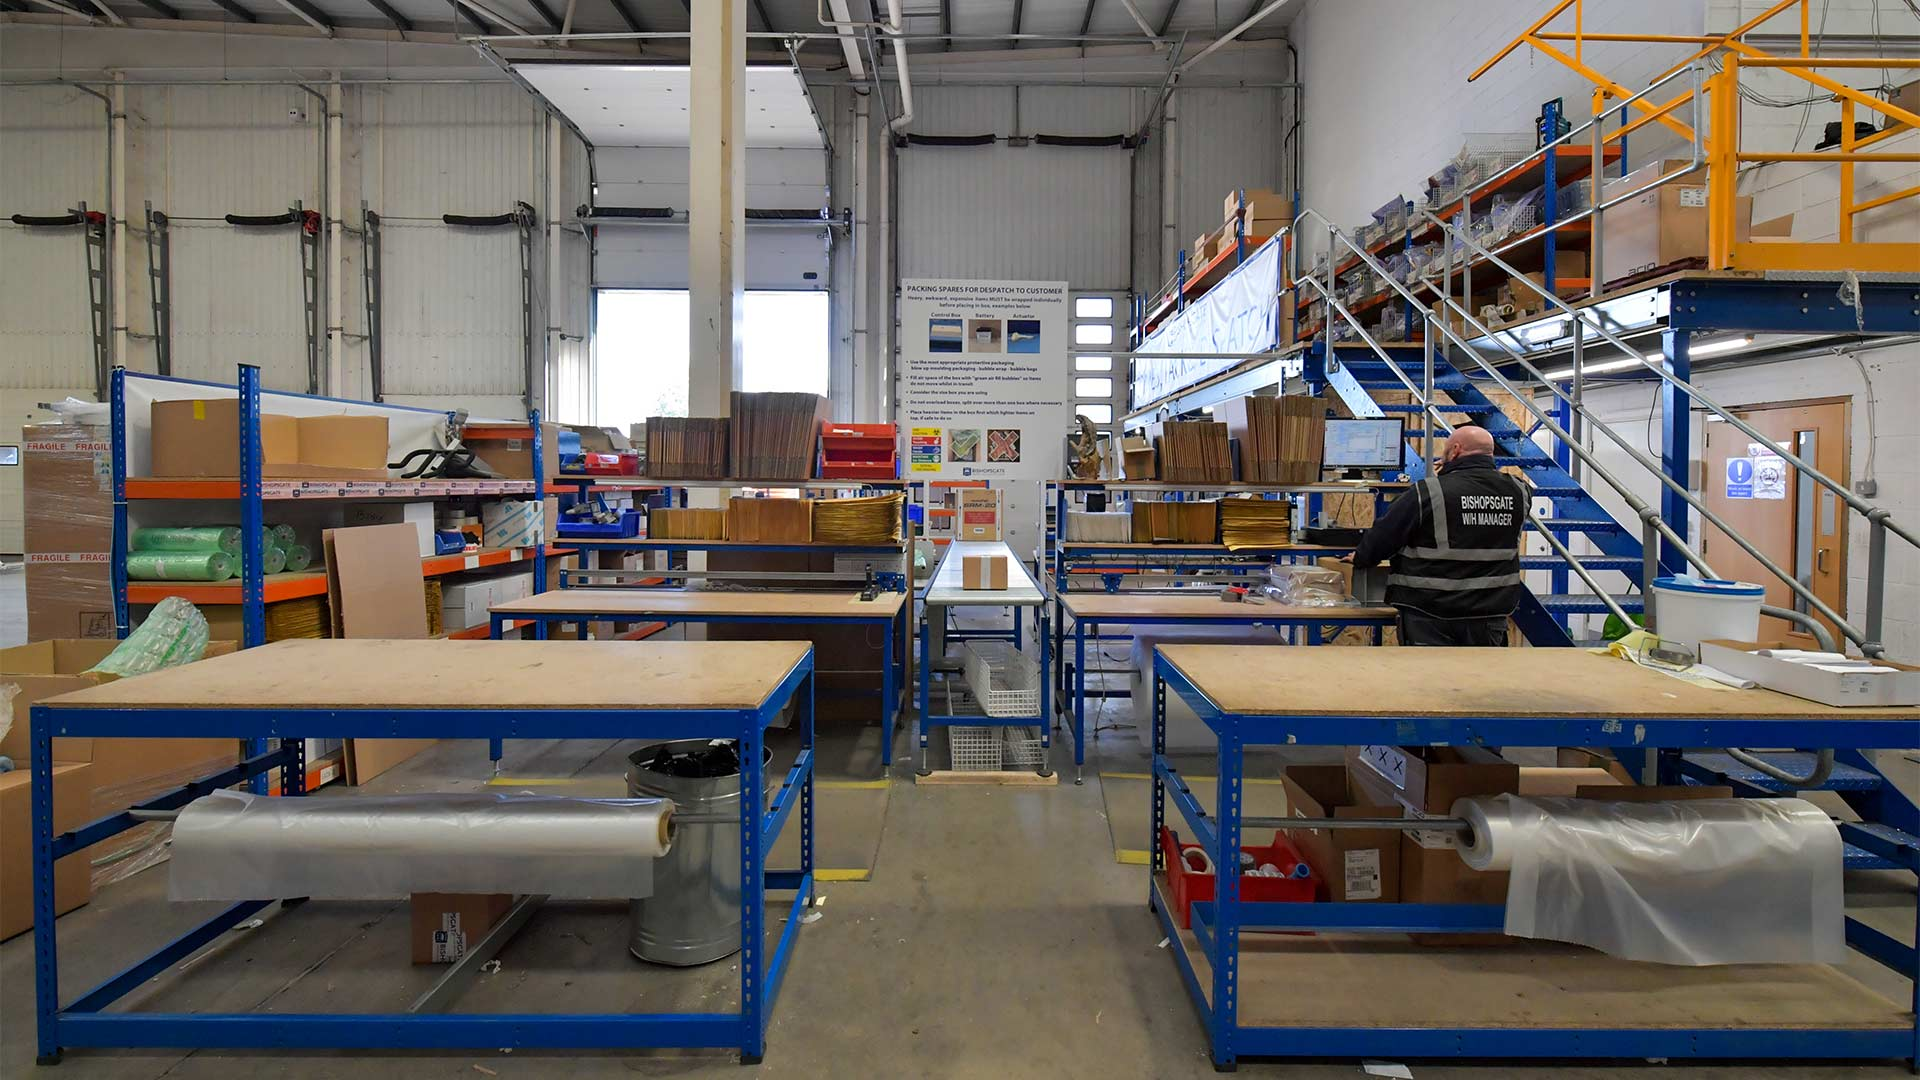 freight-warehouse-supply-chain2